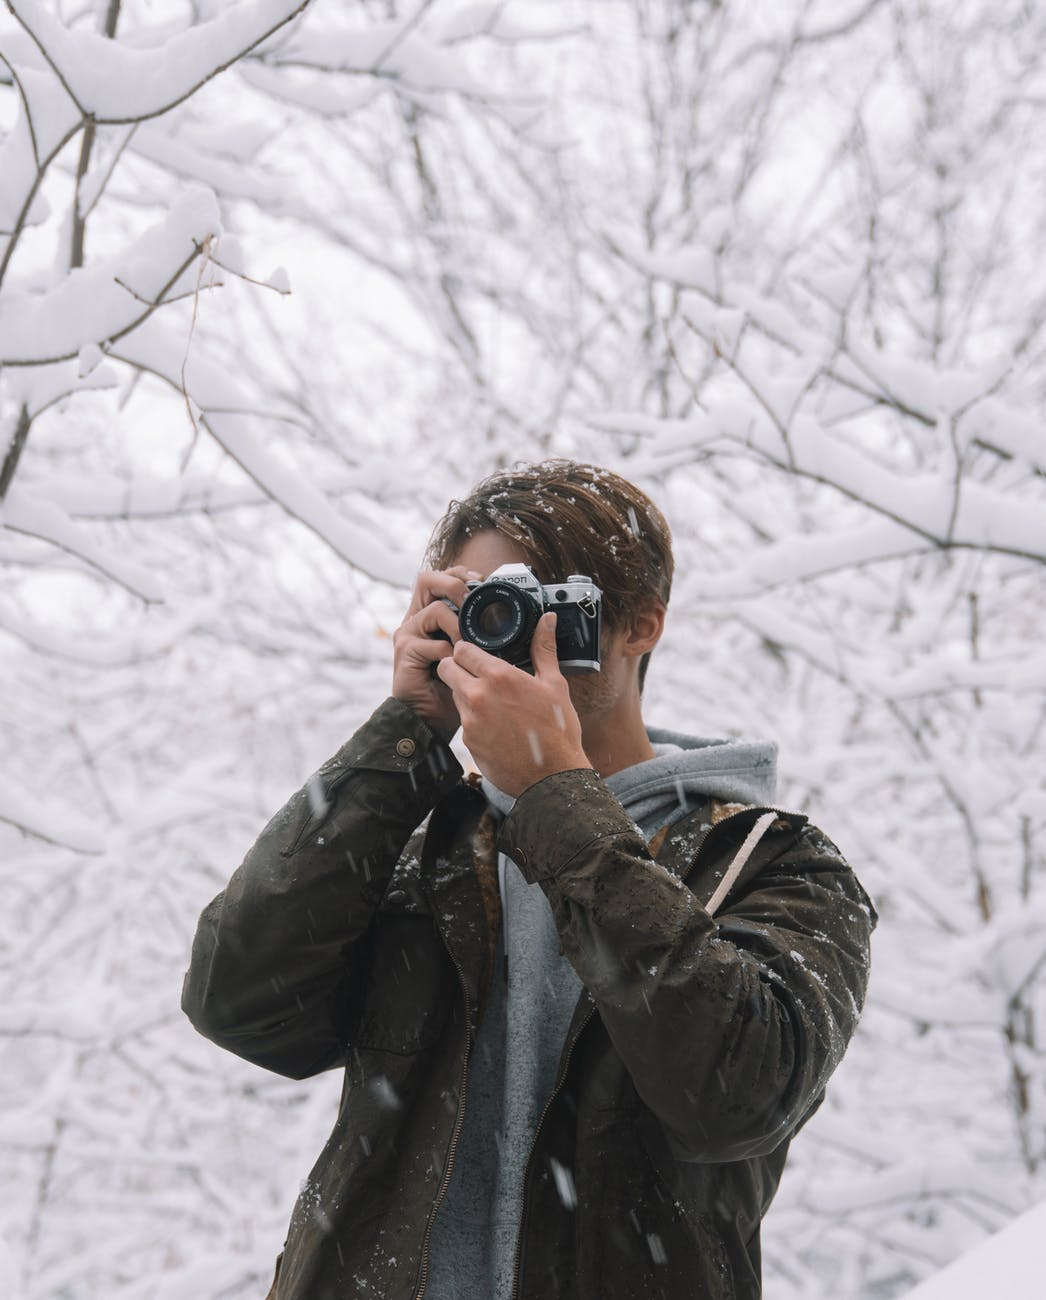 male photographer taking photo in winter woods